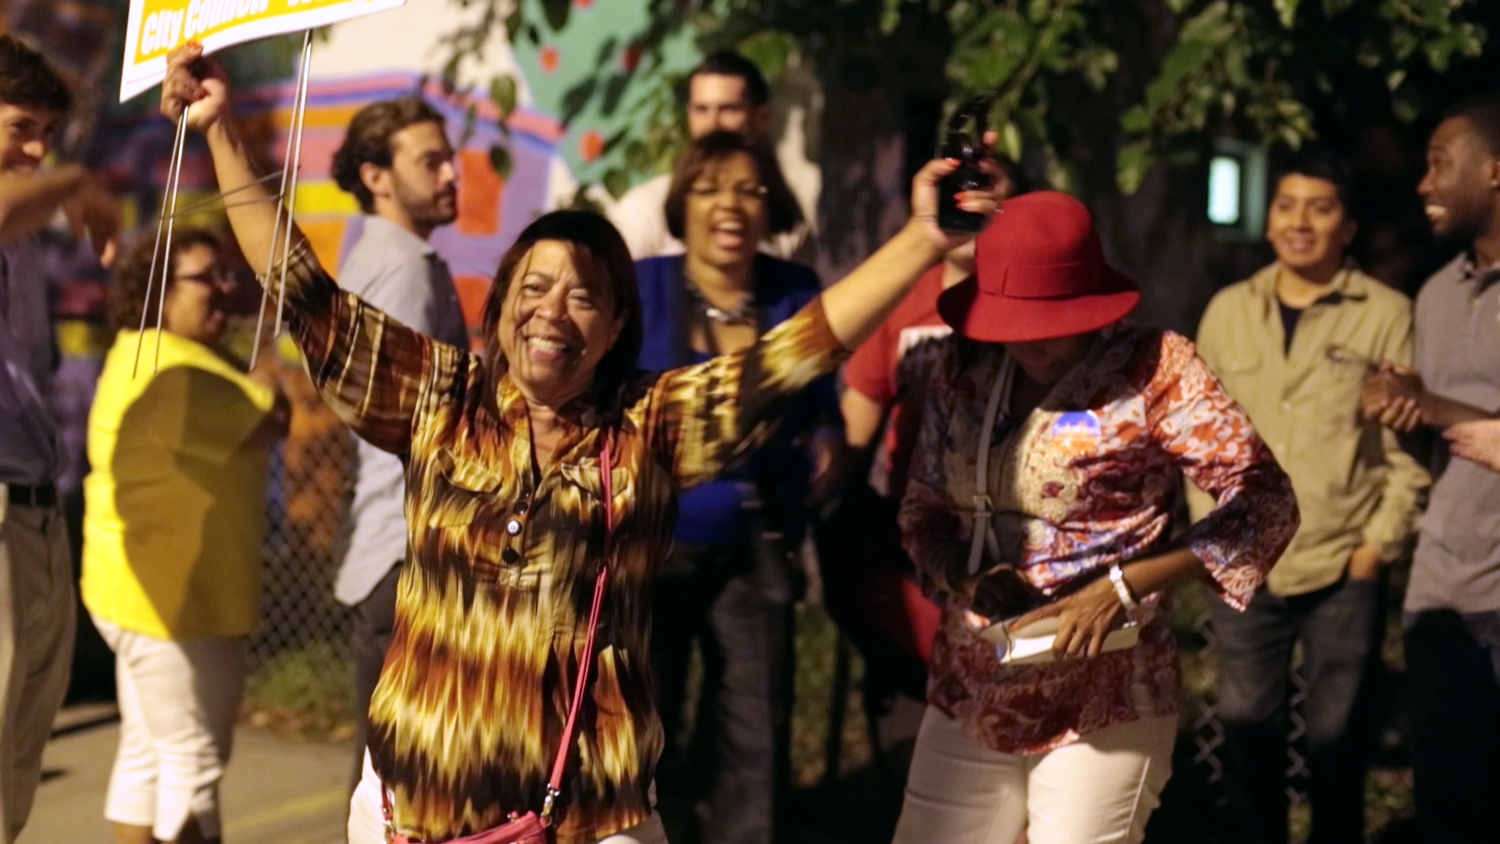 REVIEW: 'Councilwoman' Documentary Chronicles a Dominican Hotel Maid-Turned-Politician Fighting for a Living Wage